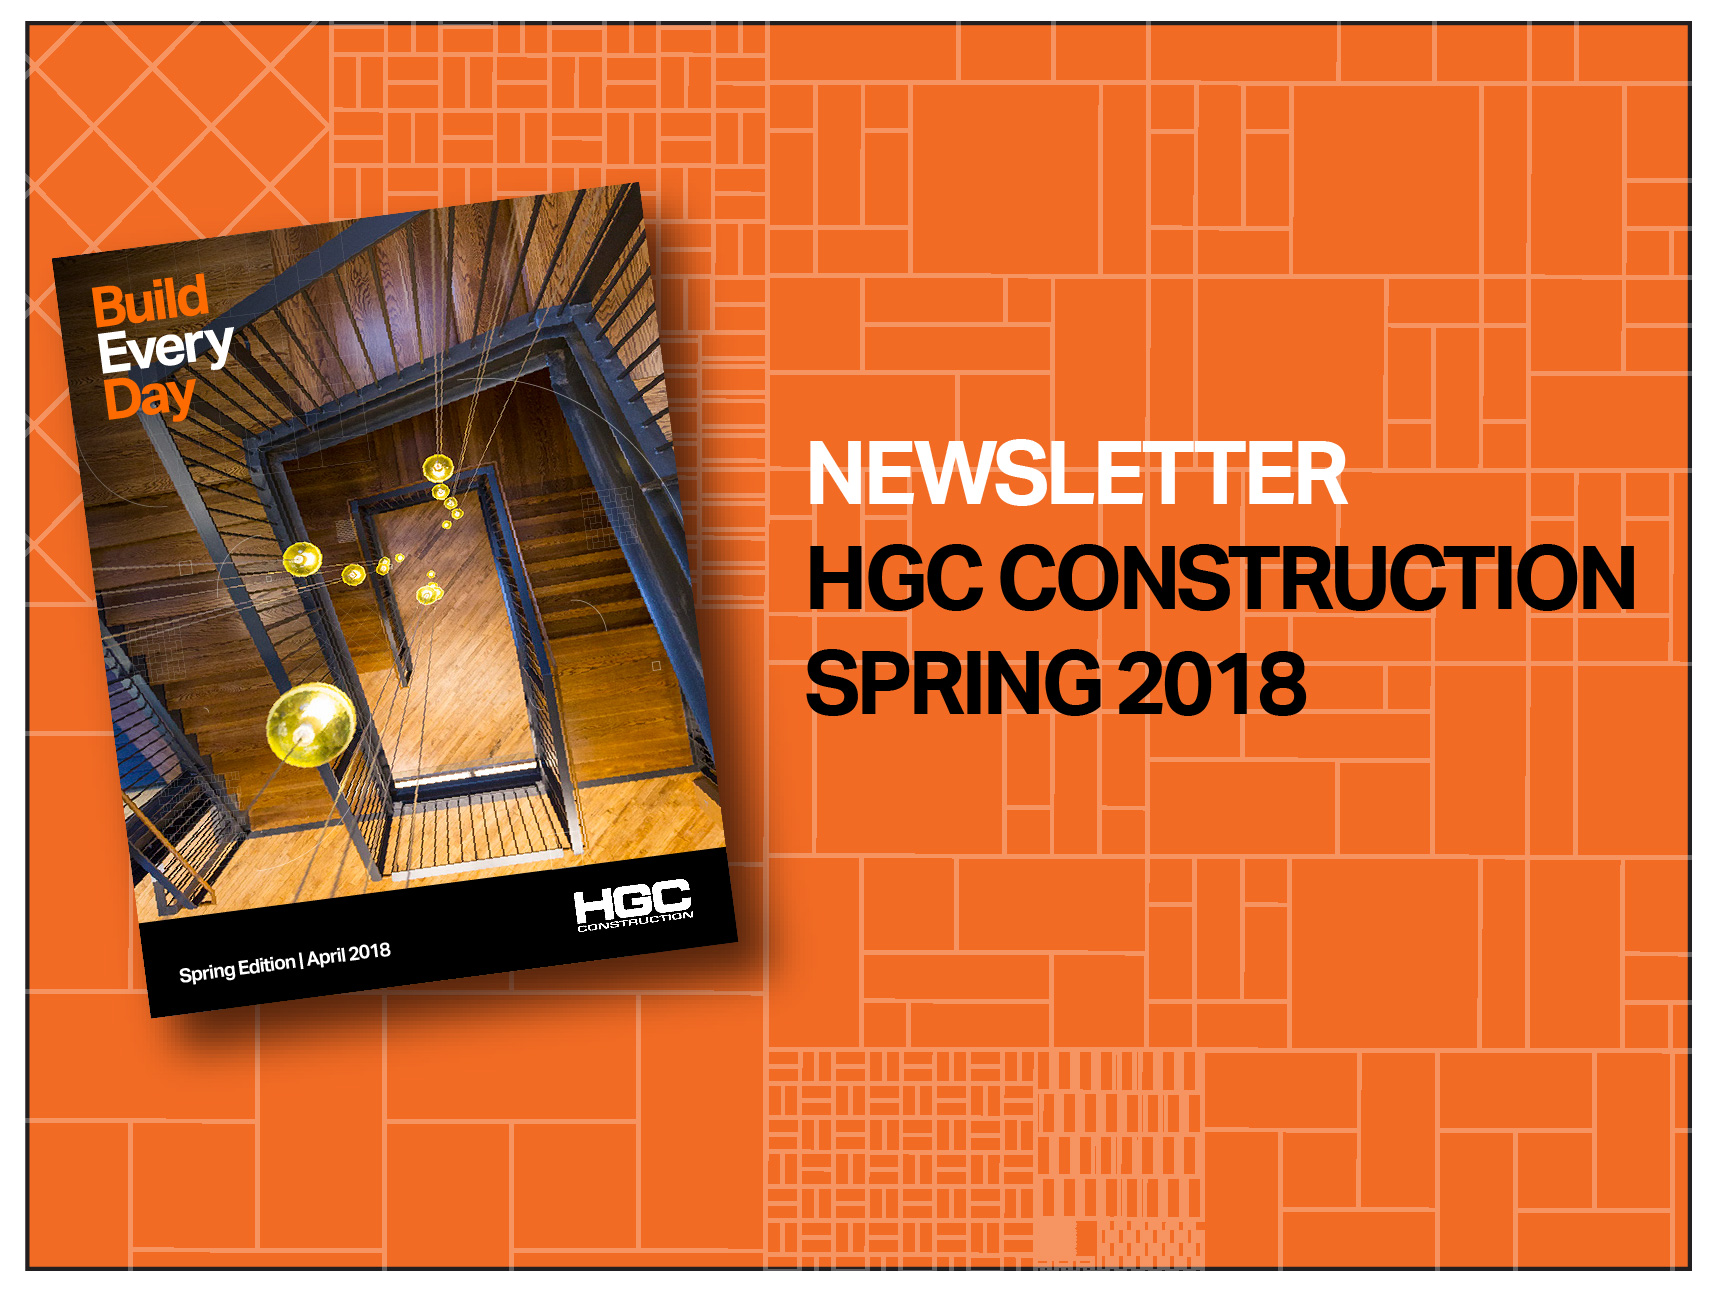 An orange background with gridwork overlay. The cover of the Spring Newsletter is displayed, angled slightly. The cover features an aerial view of a large wooden staircase with steel rails, and bright yellow globe lights dangling through the center of the stairwell.